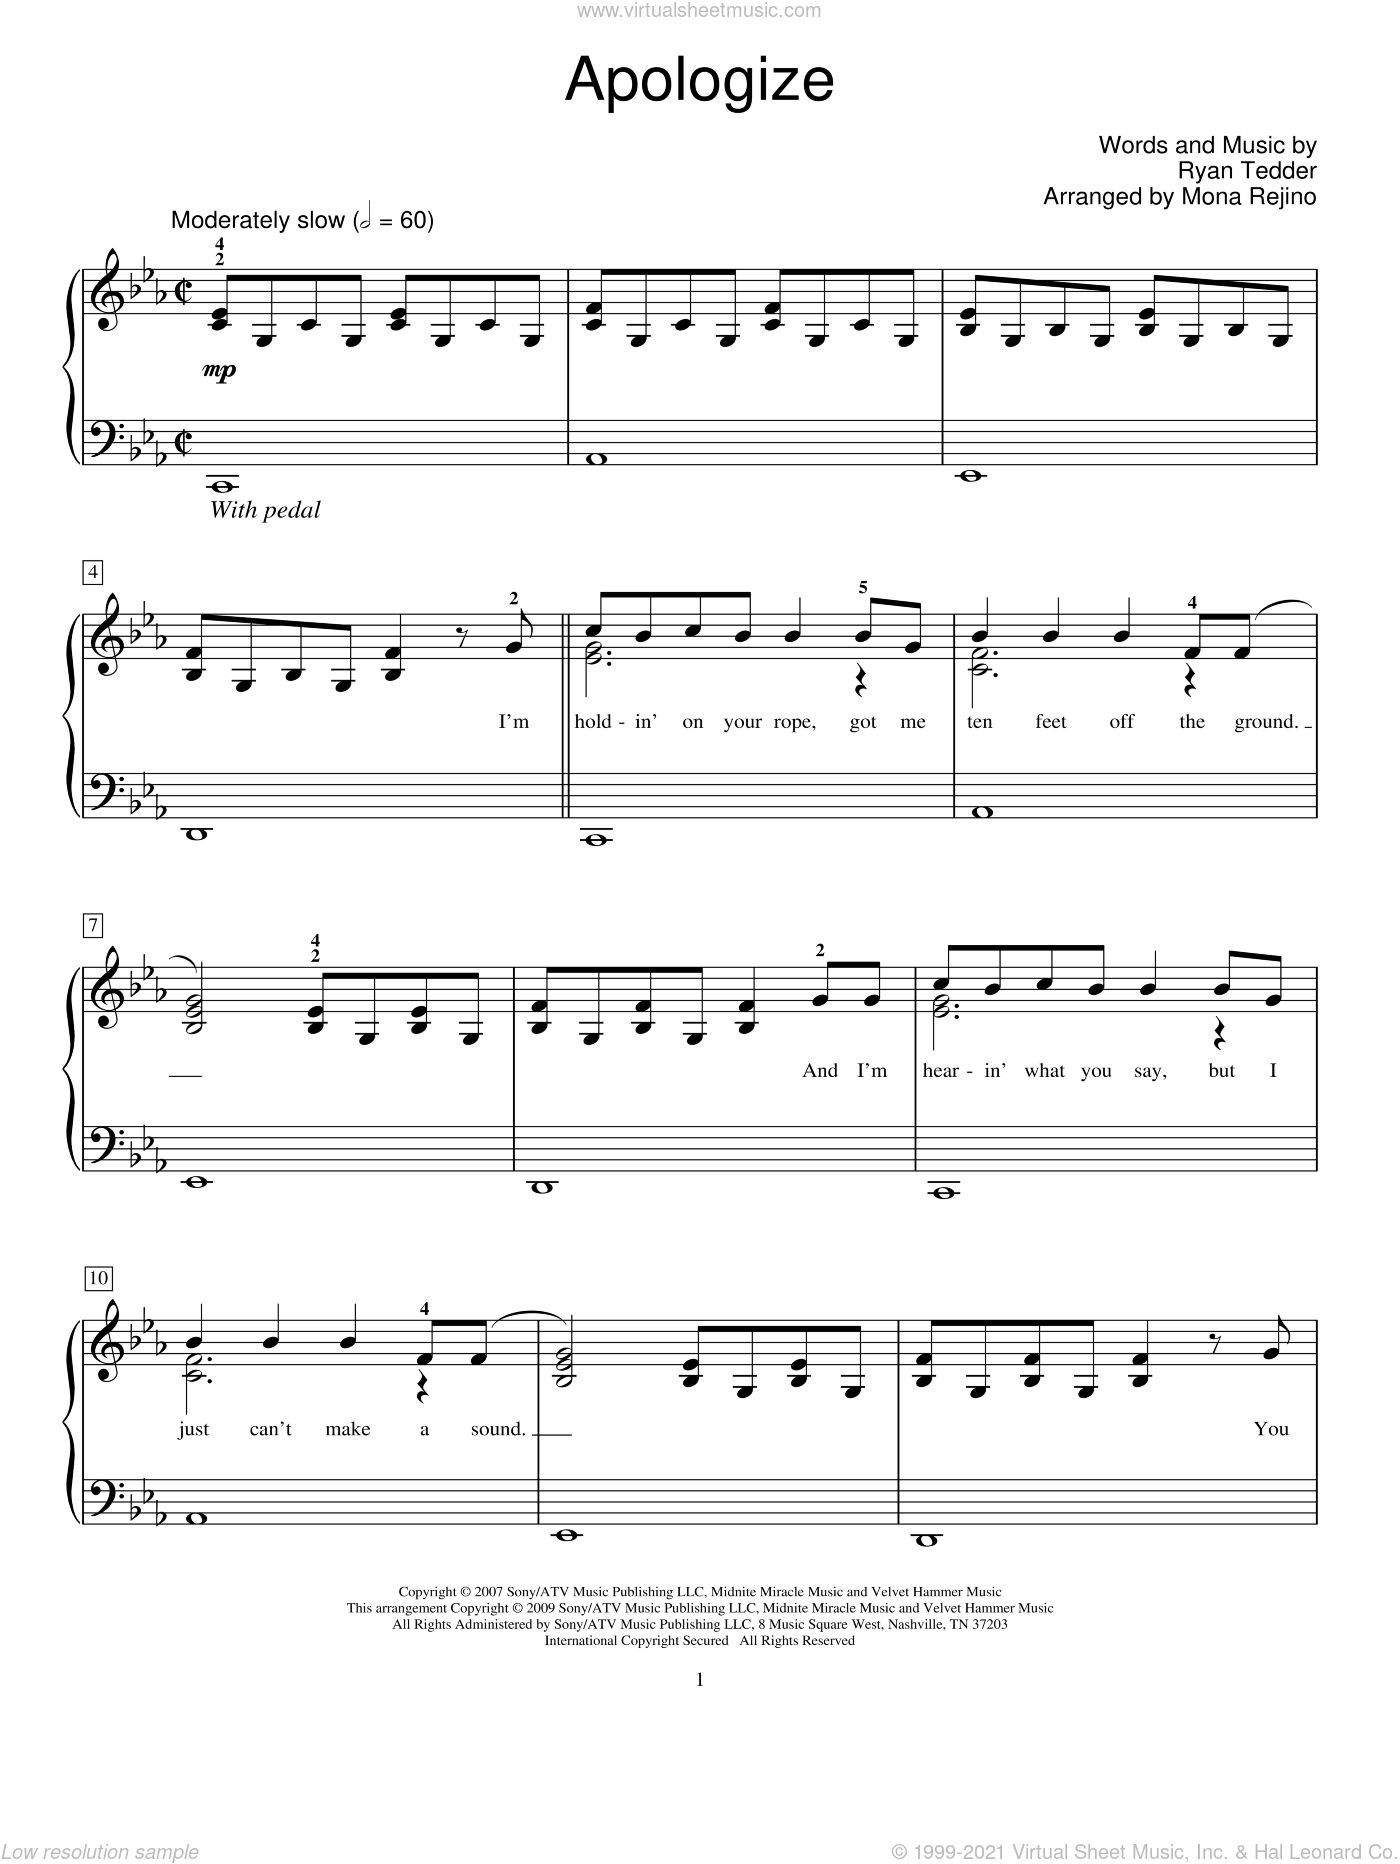 Apologize sheet music for piano solo (elementary) by Ryan Tedder, Miscellaneous, Mona Rejino, OneRepublic, Timbaland and Timbaland featuring OneRepublic. Score Image Preview.